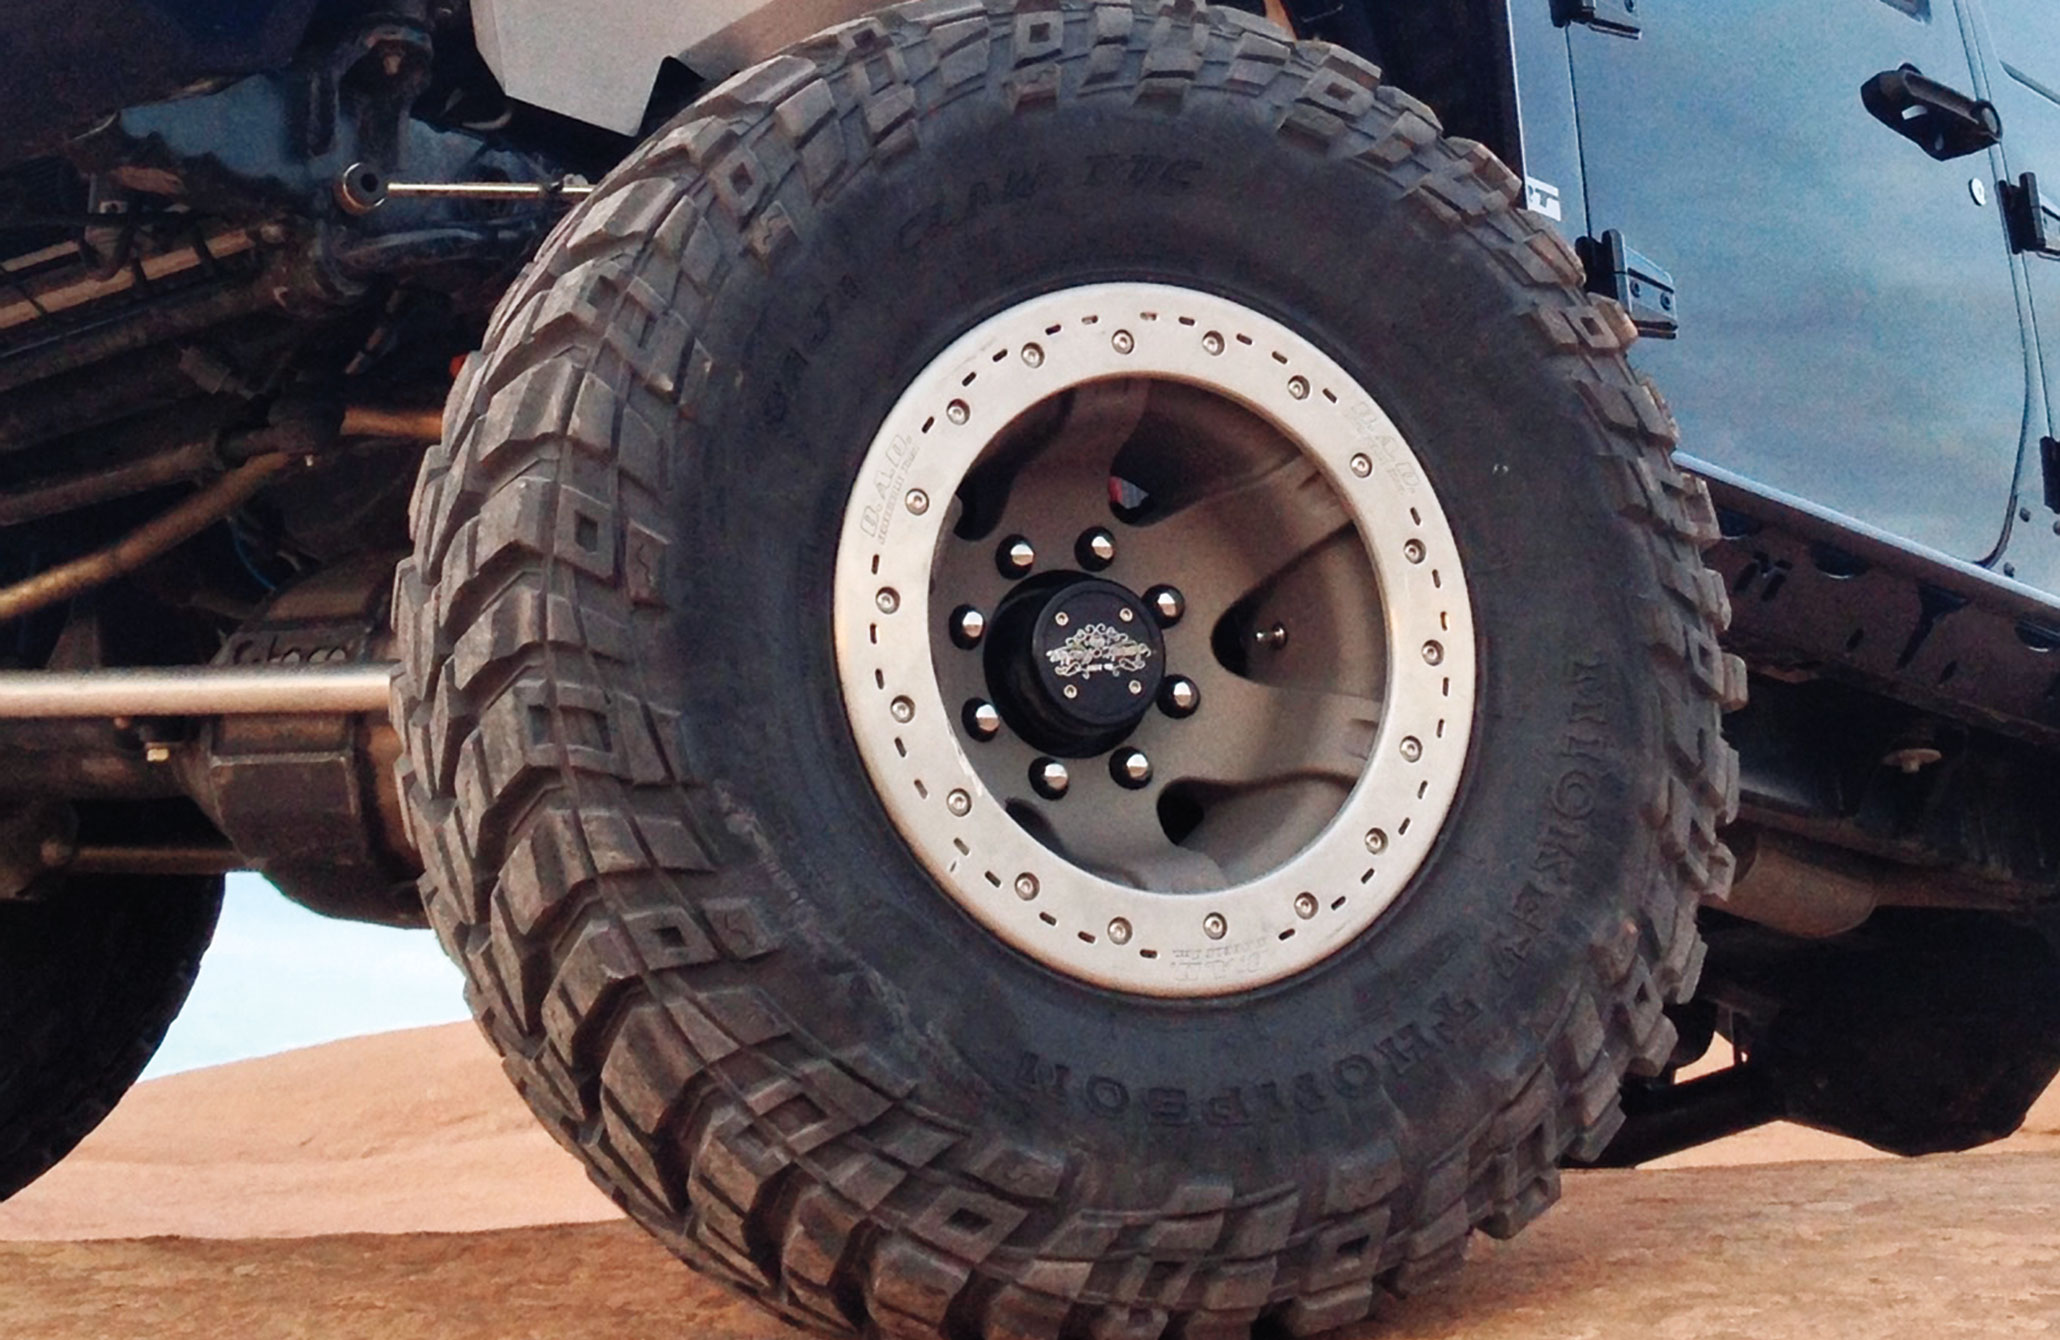 Bead Assist Device (BAD) has a different take on bead retention. Their U.S.-made cast-aluminum wheels use an internal ring with 5⁄8-inch studs and cotter pins to keep the ring from loosening after installation. They are only available in a 17-inch size and boast a 3,000-pound load rating.